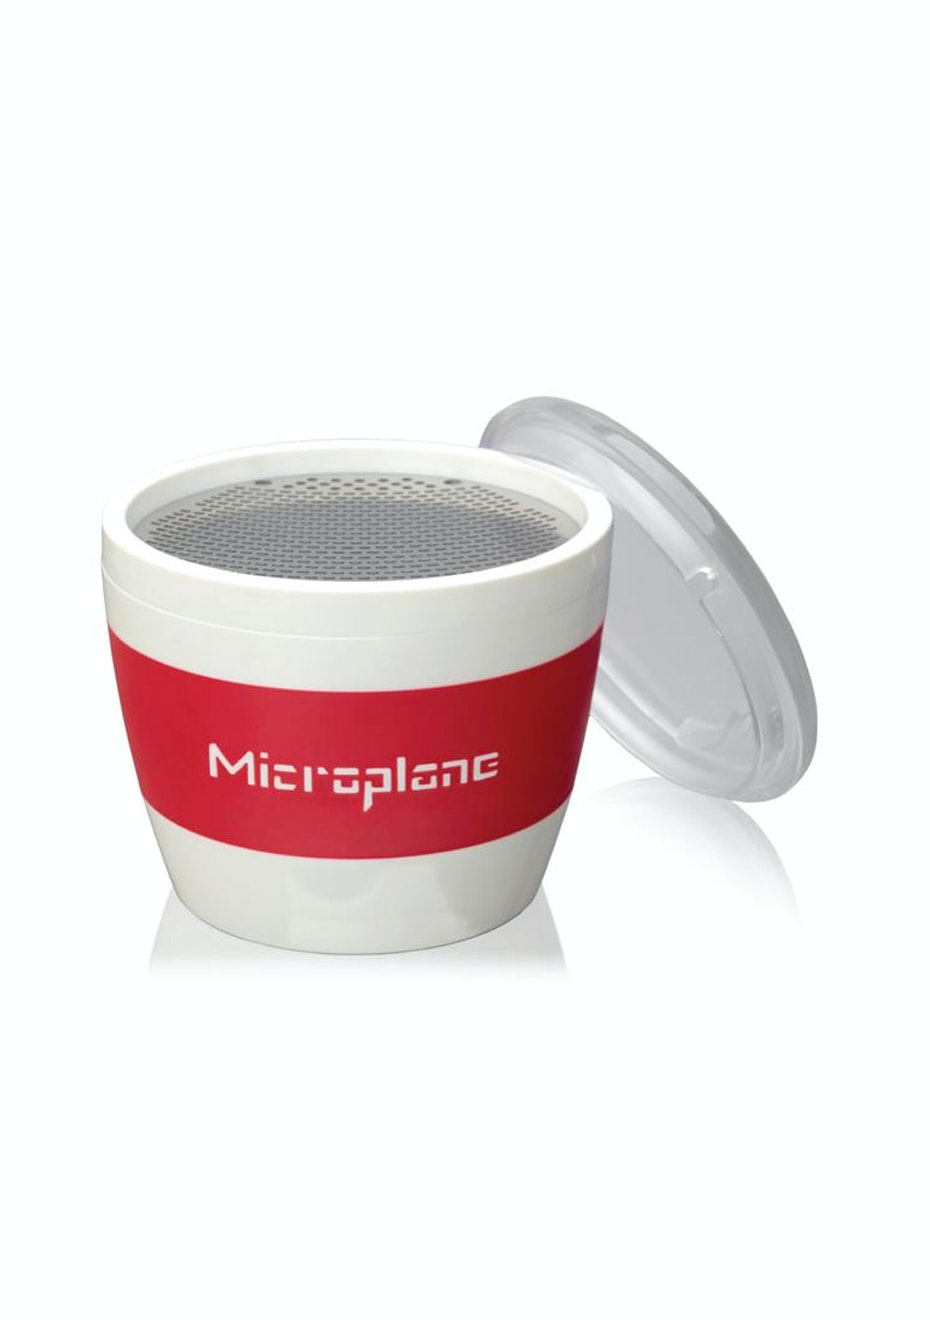 Microplane - Spice Cup Grater - Red